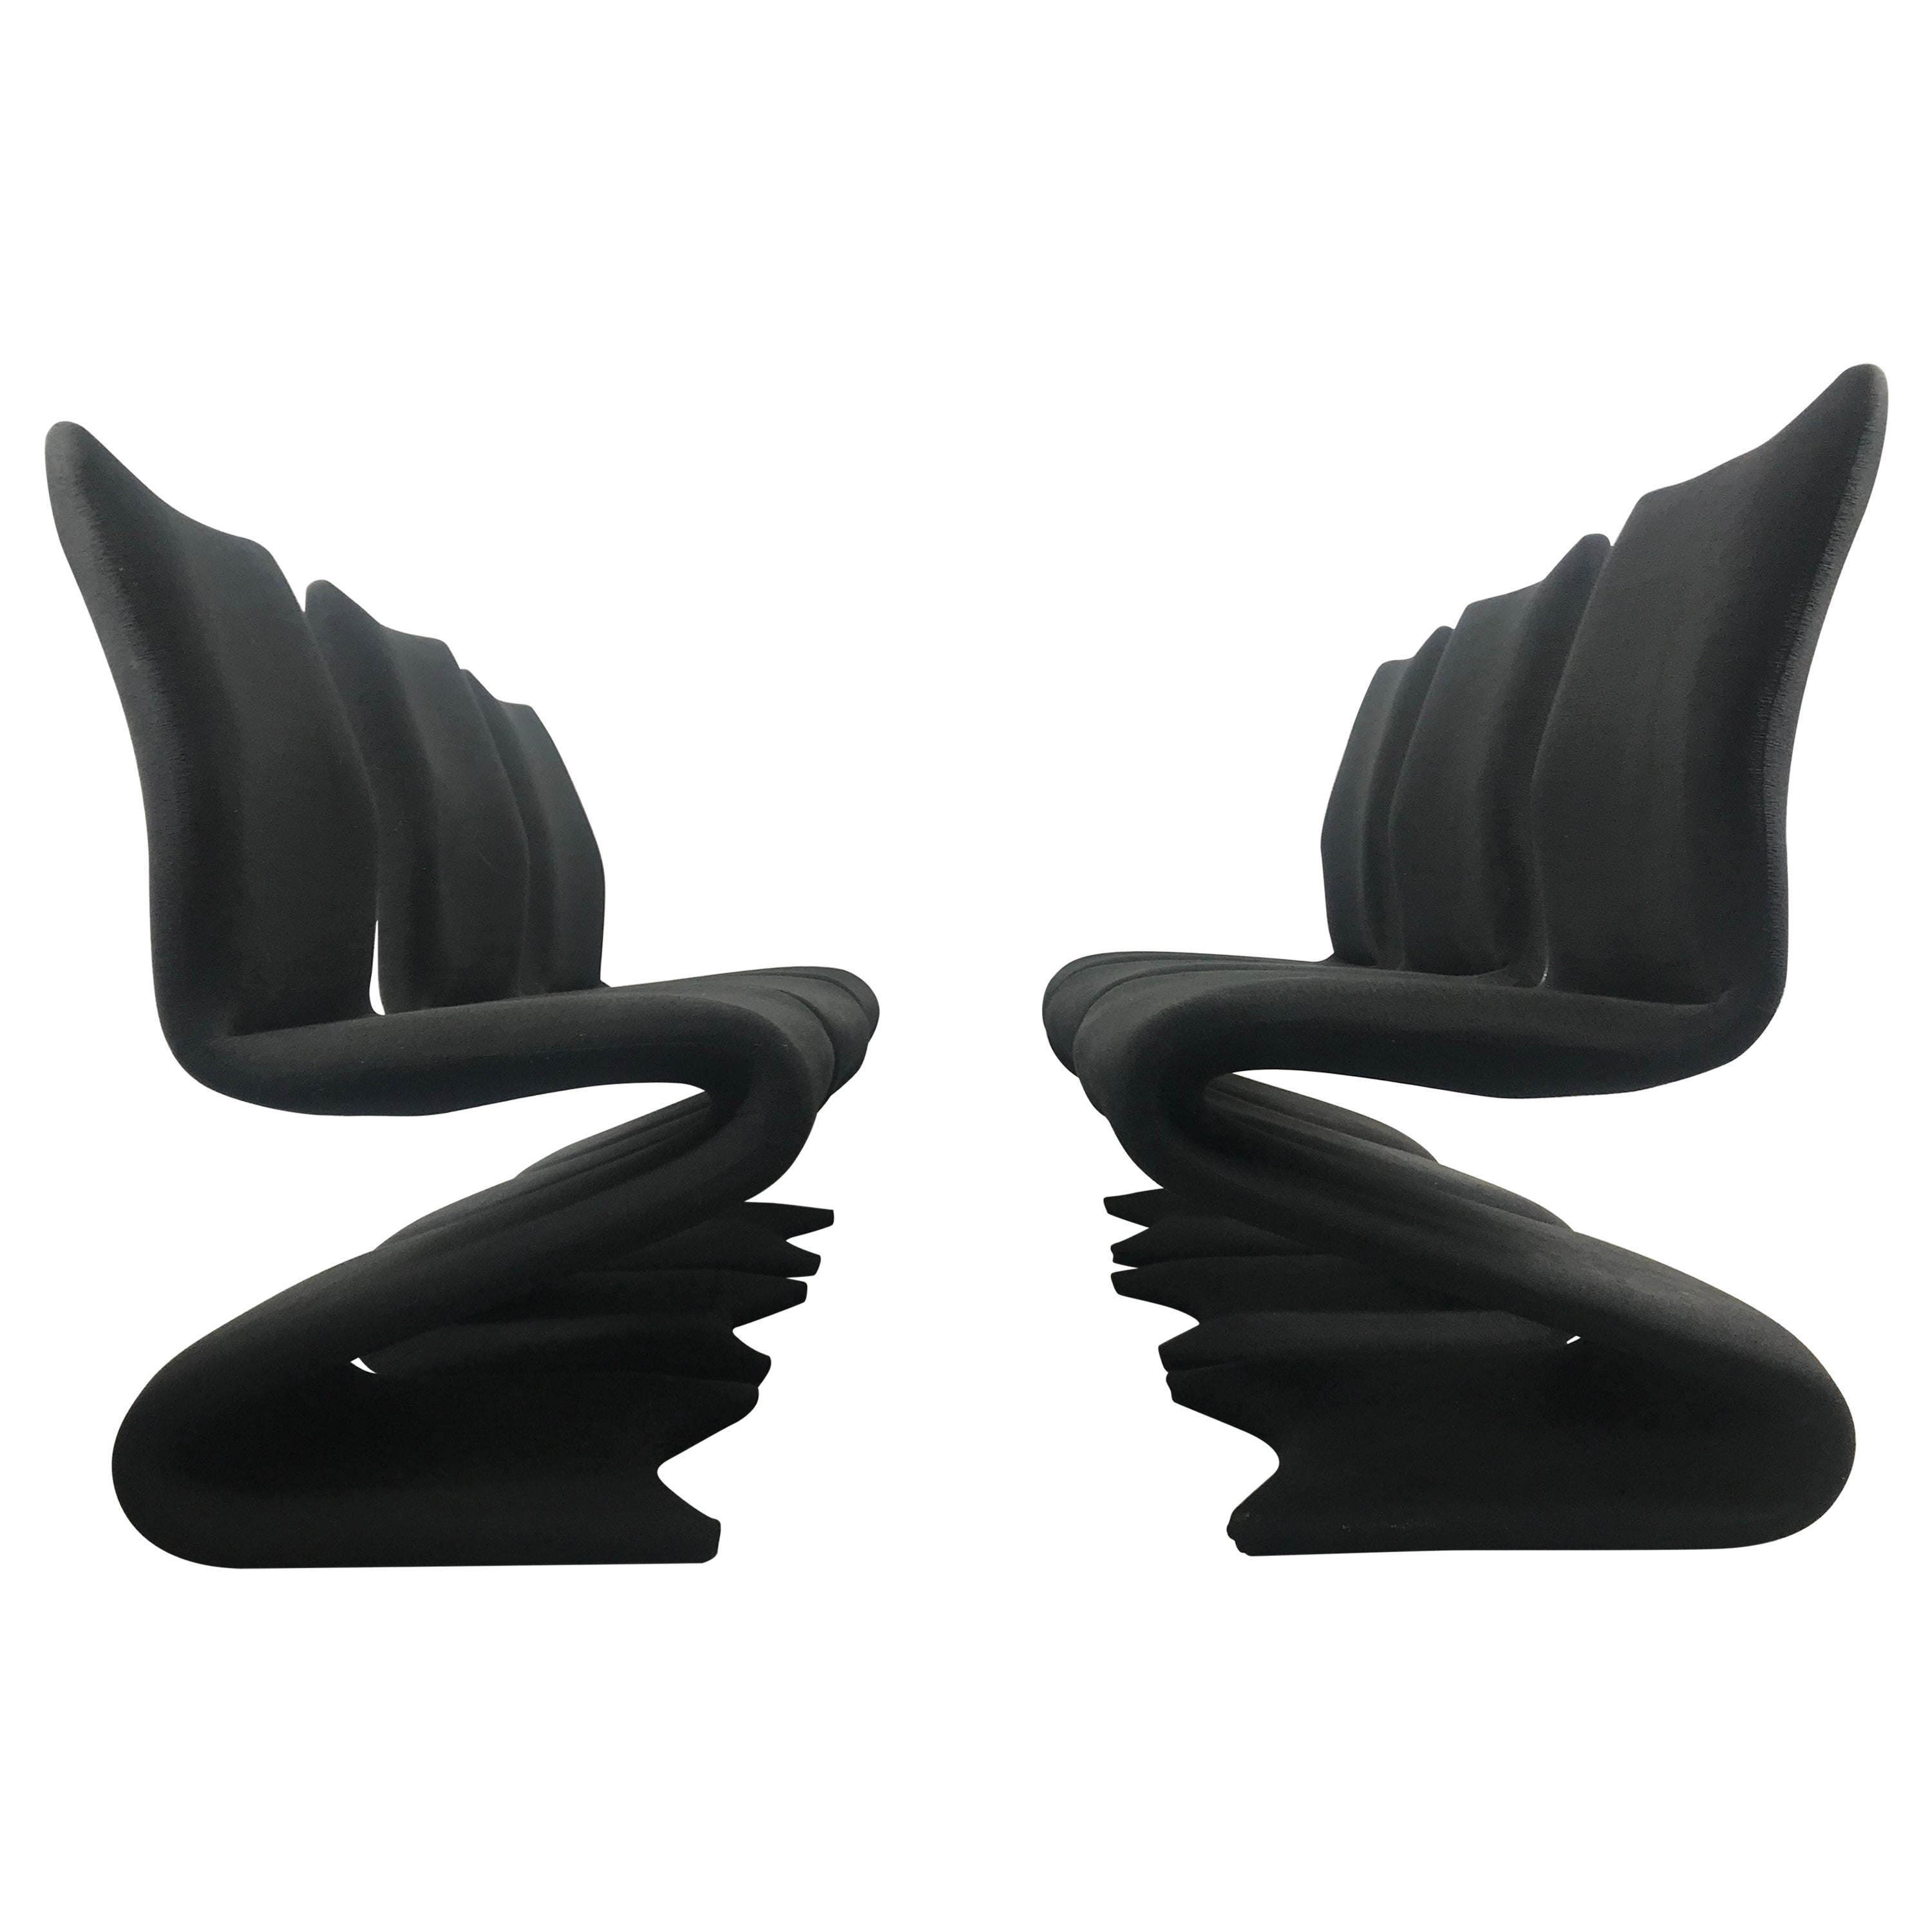 "Set 6 Pop Modern ""S"" Dining Chairs Attributed to Verner Panton Model 275 S"